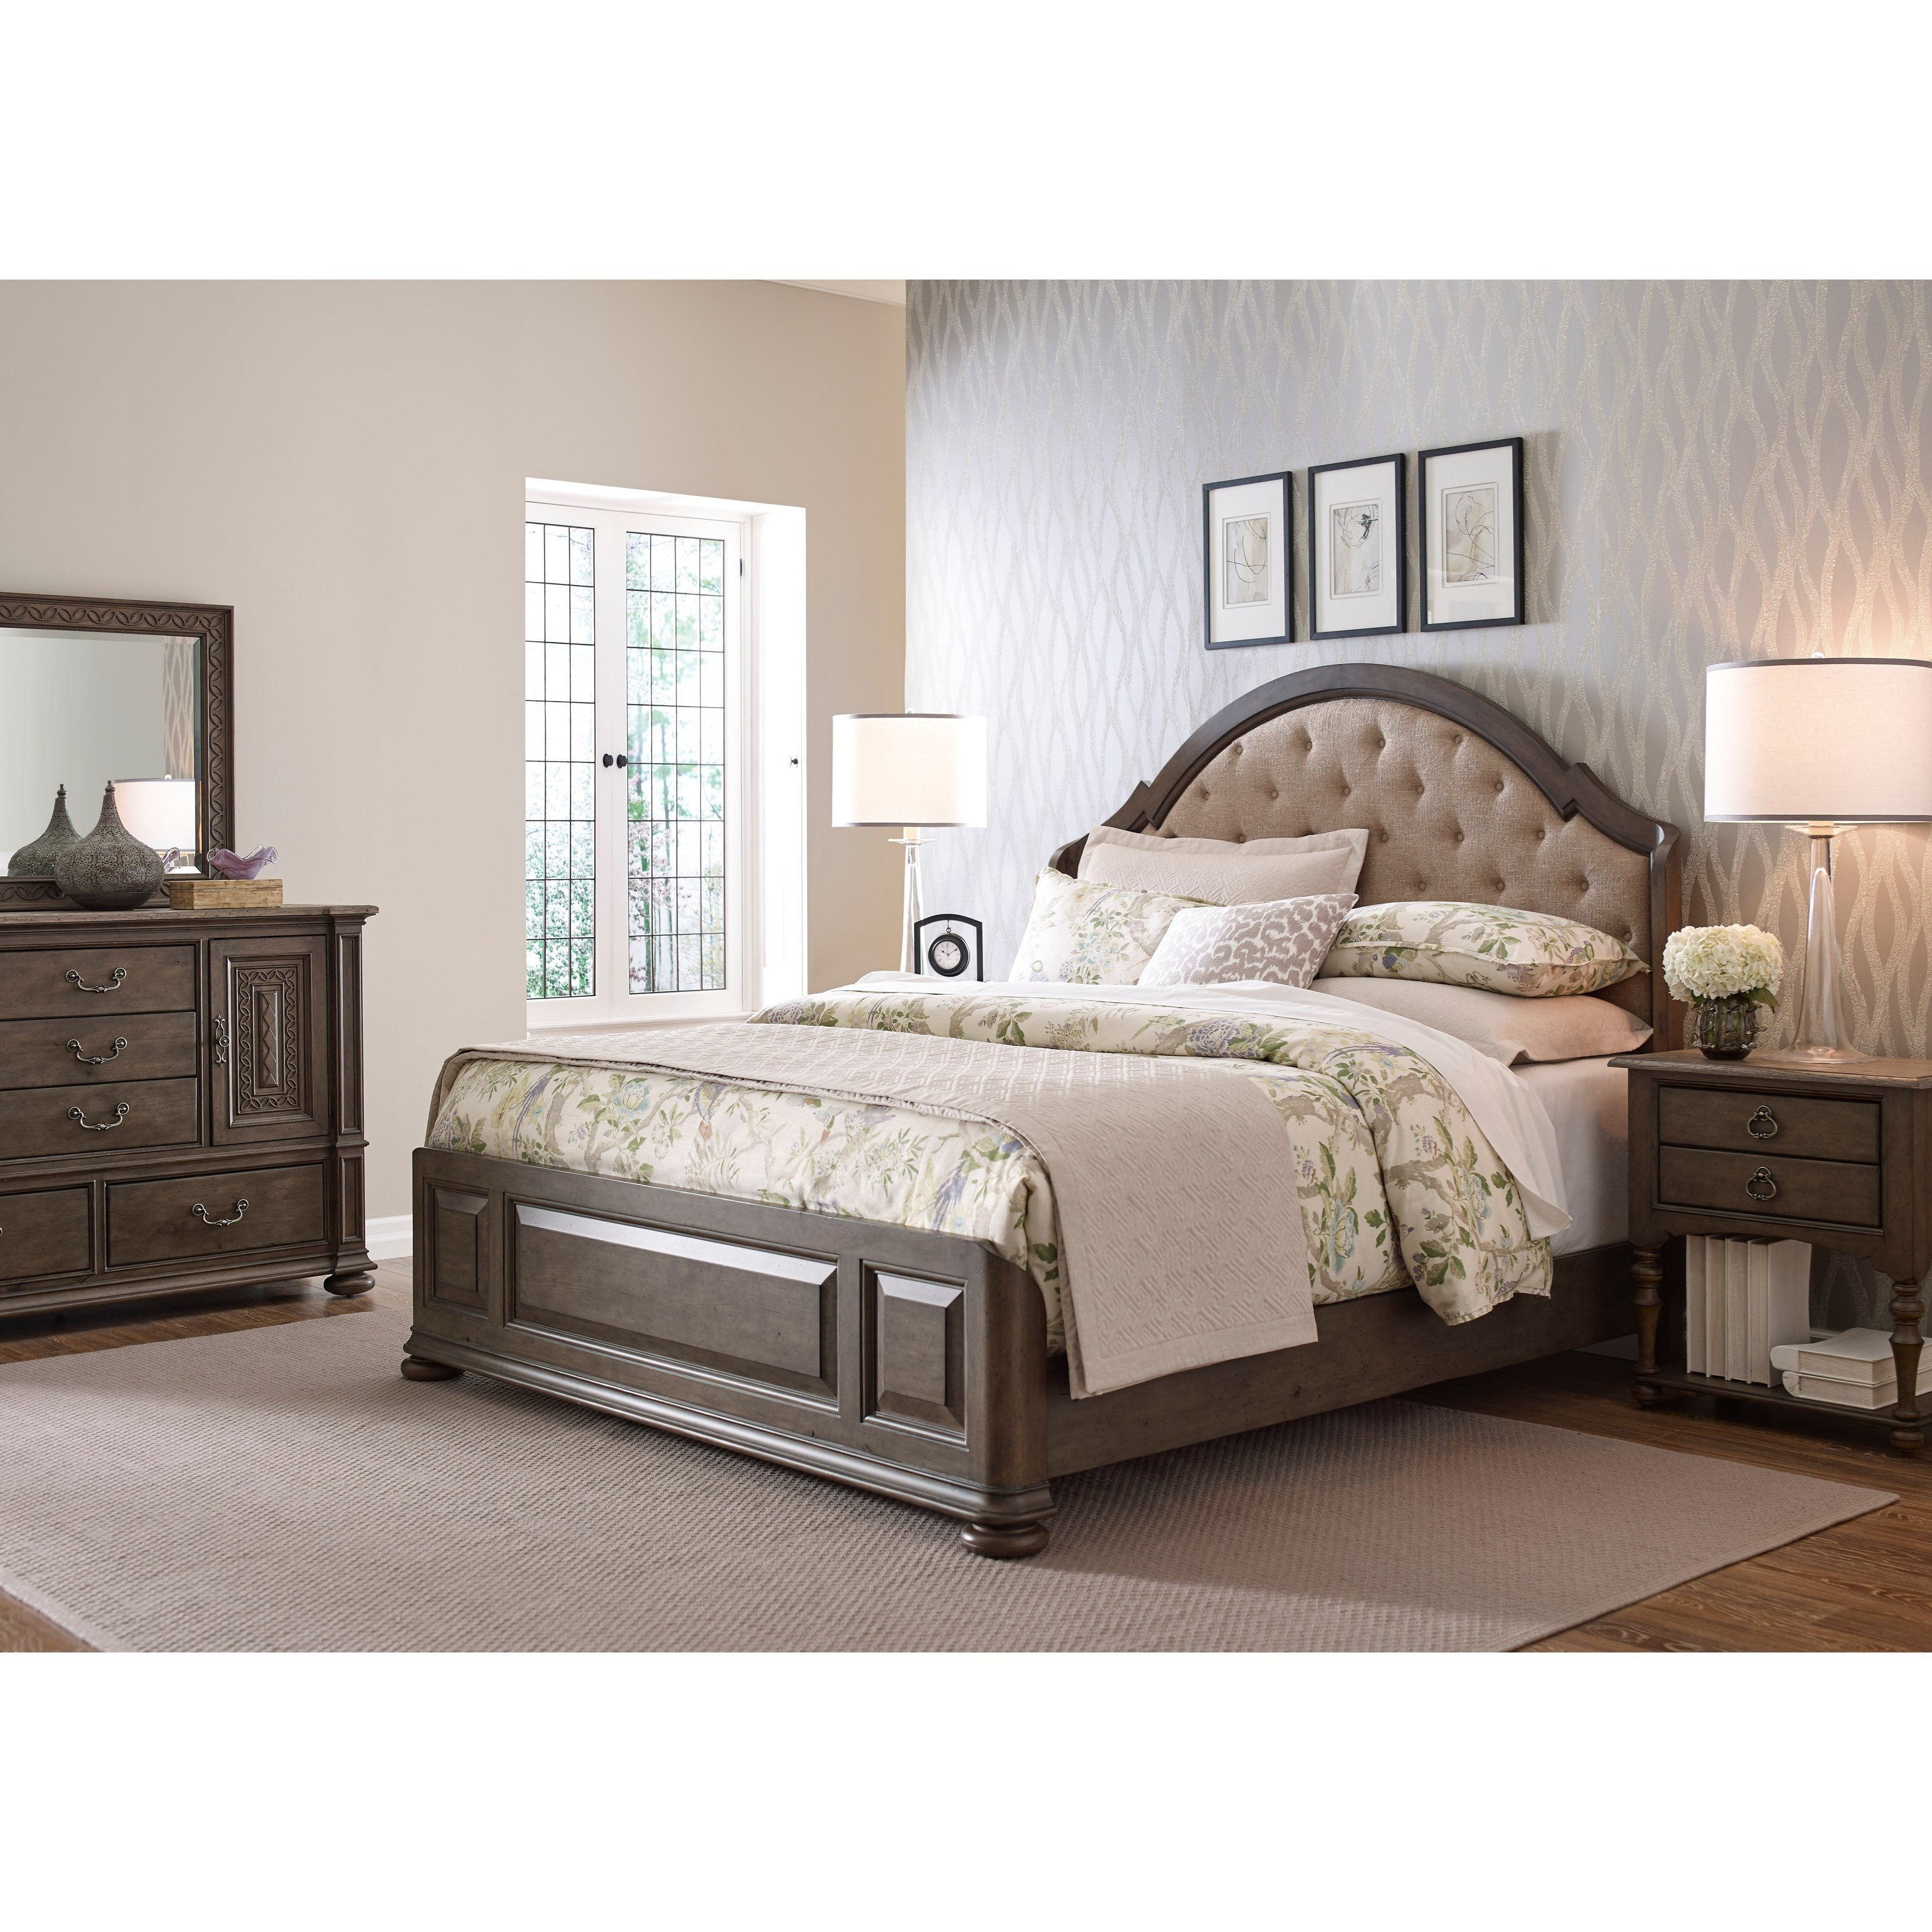 Kincaid furniture greyson king bedroom group johnny for Bedroom furniture groups